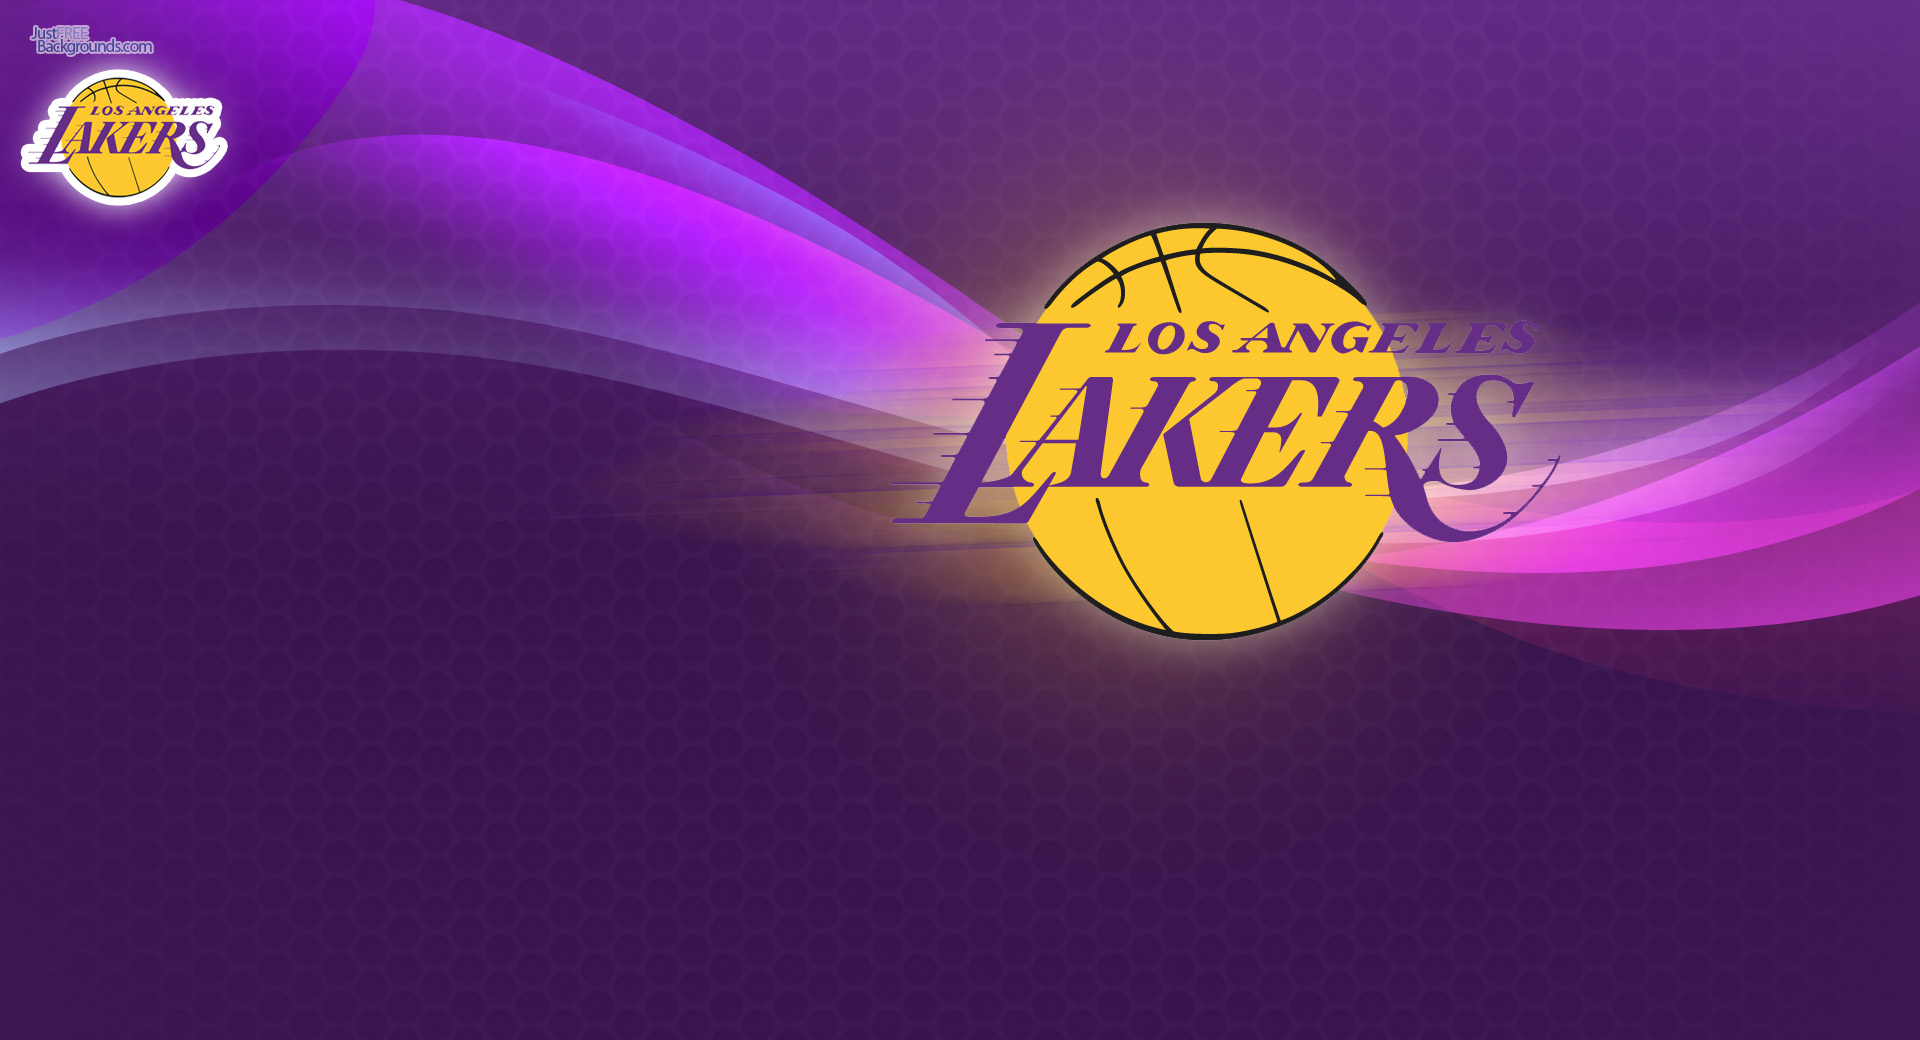 lakers wallpapers archives page 3 of 3 hd desktop